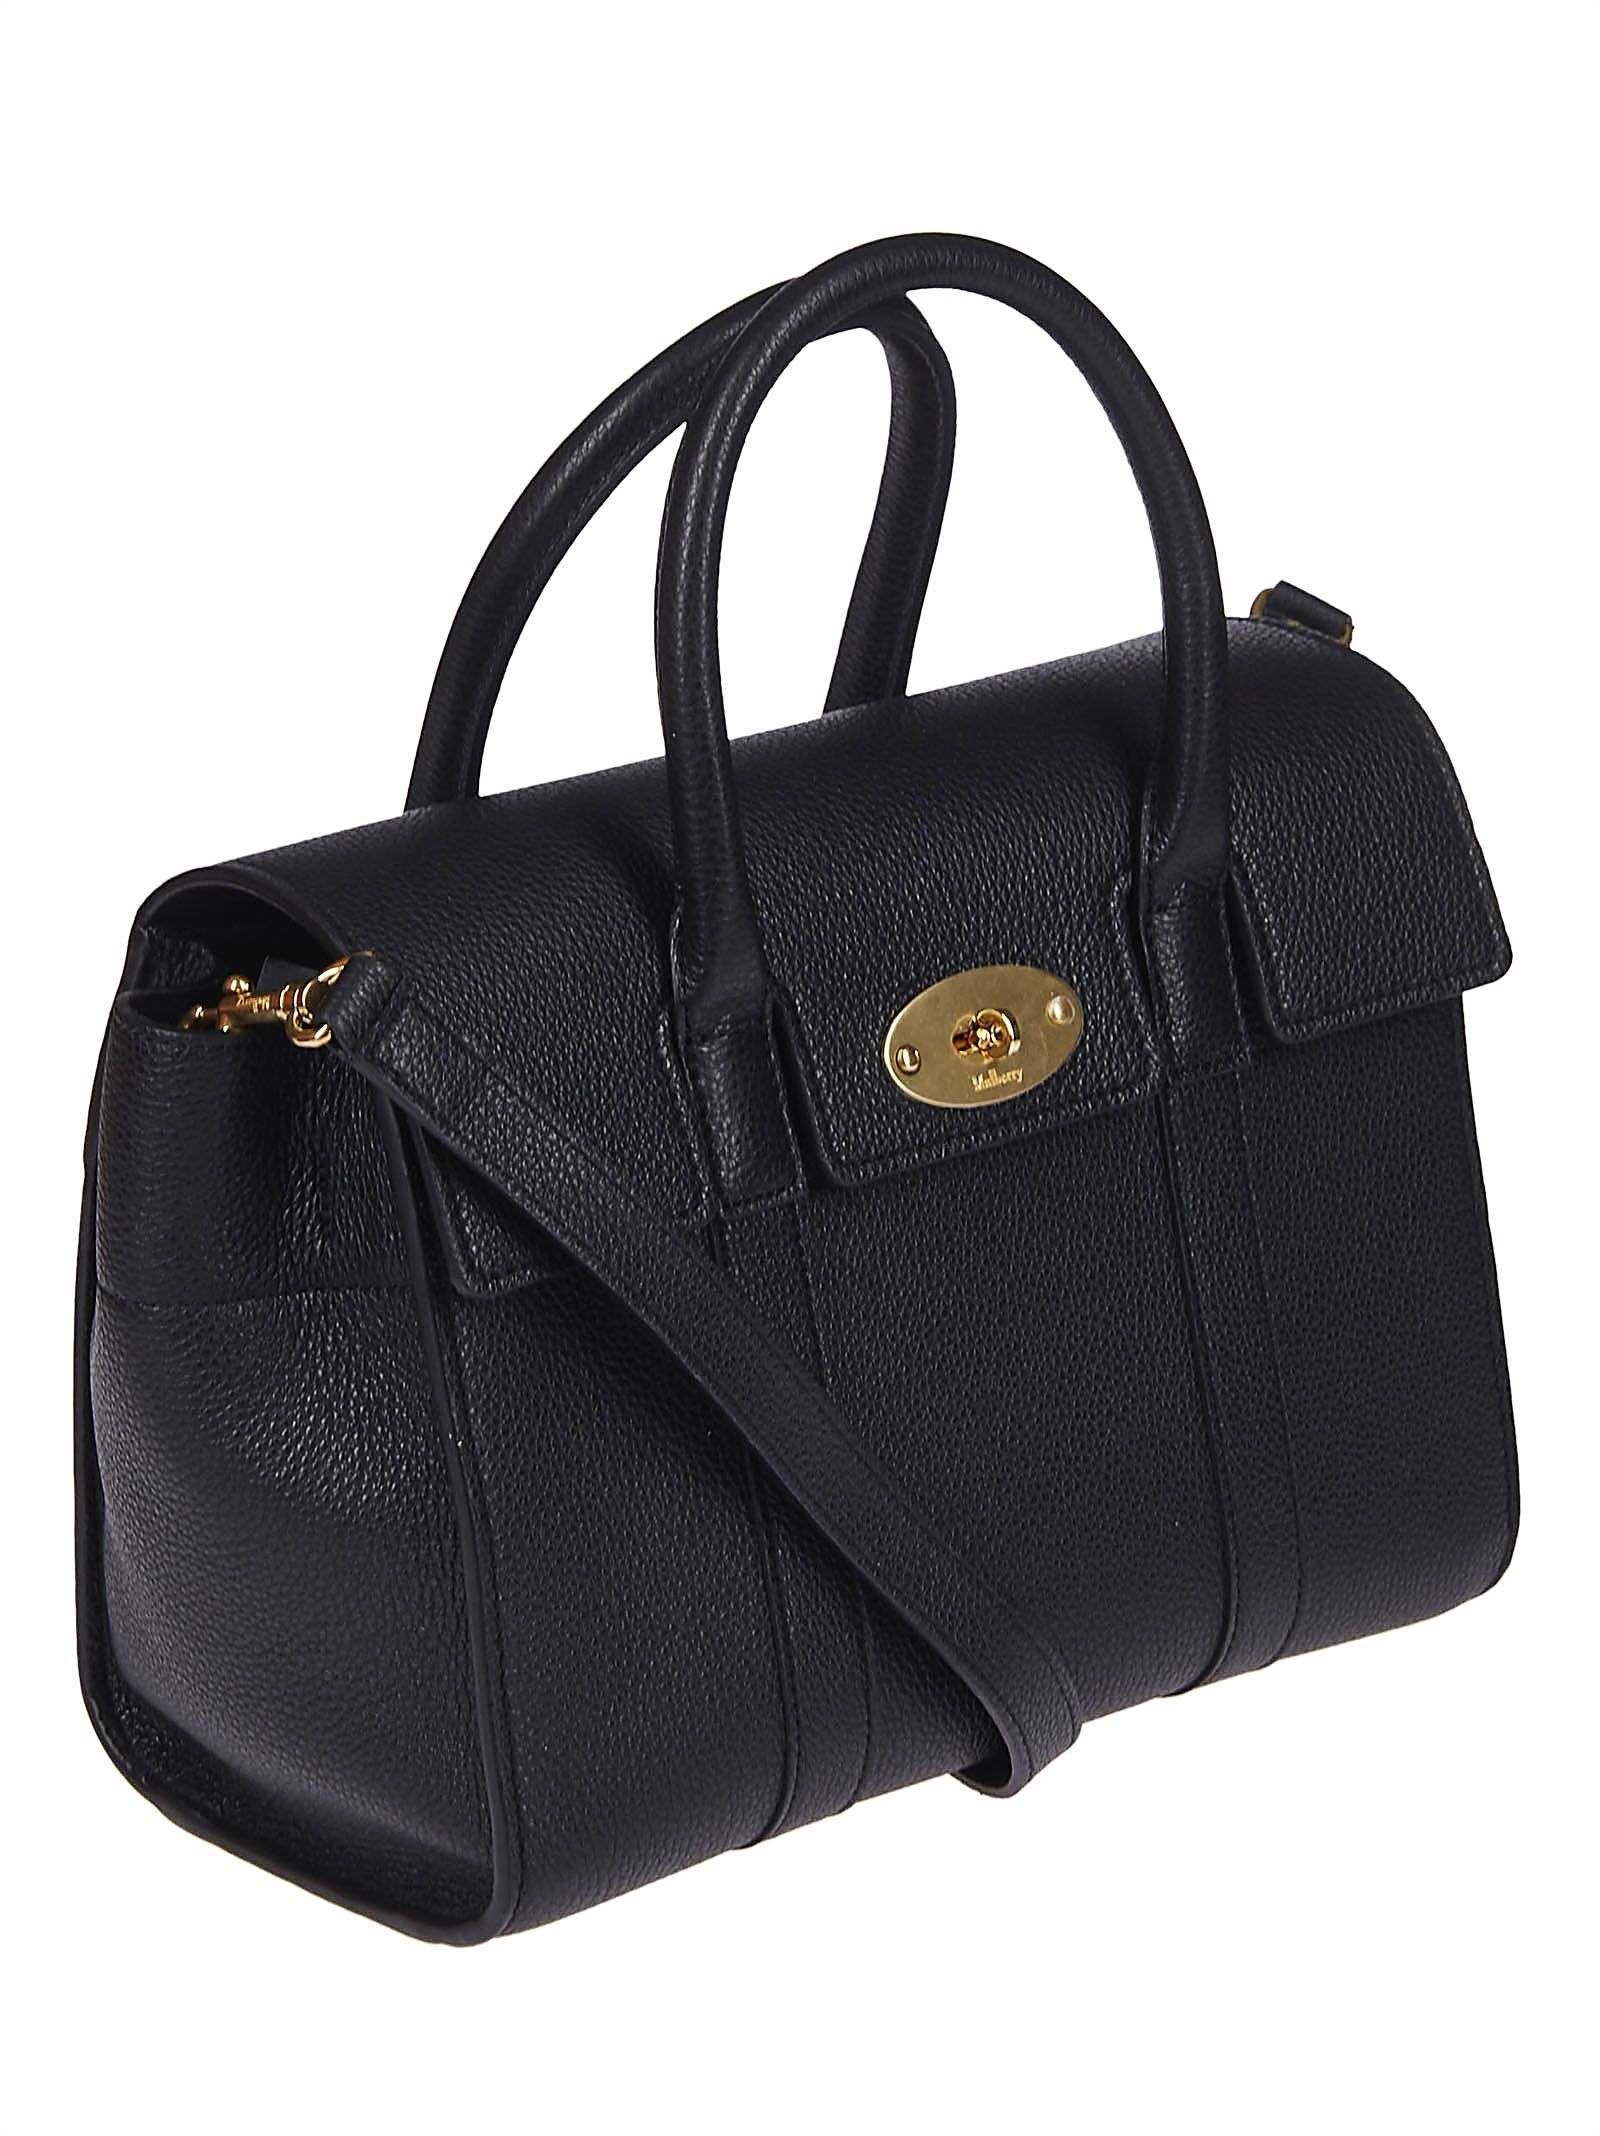 Mulberry Mulberry Bayswater Small Tote - Black - 10829596  7260283f74b3c